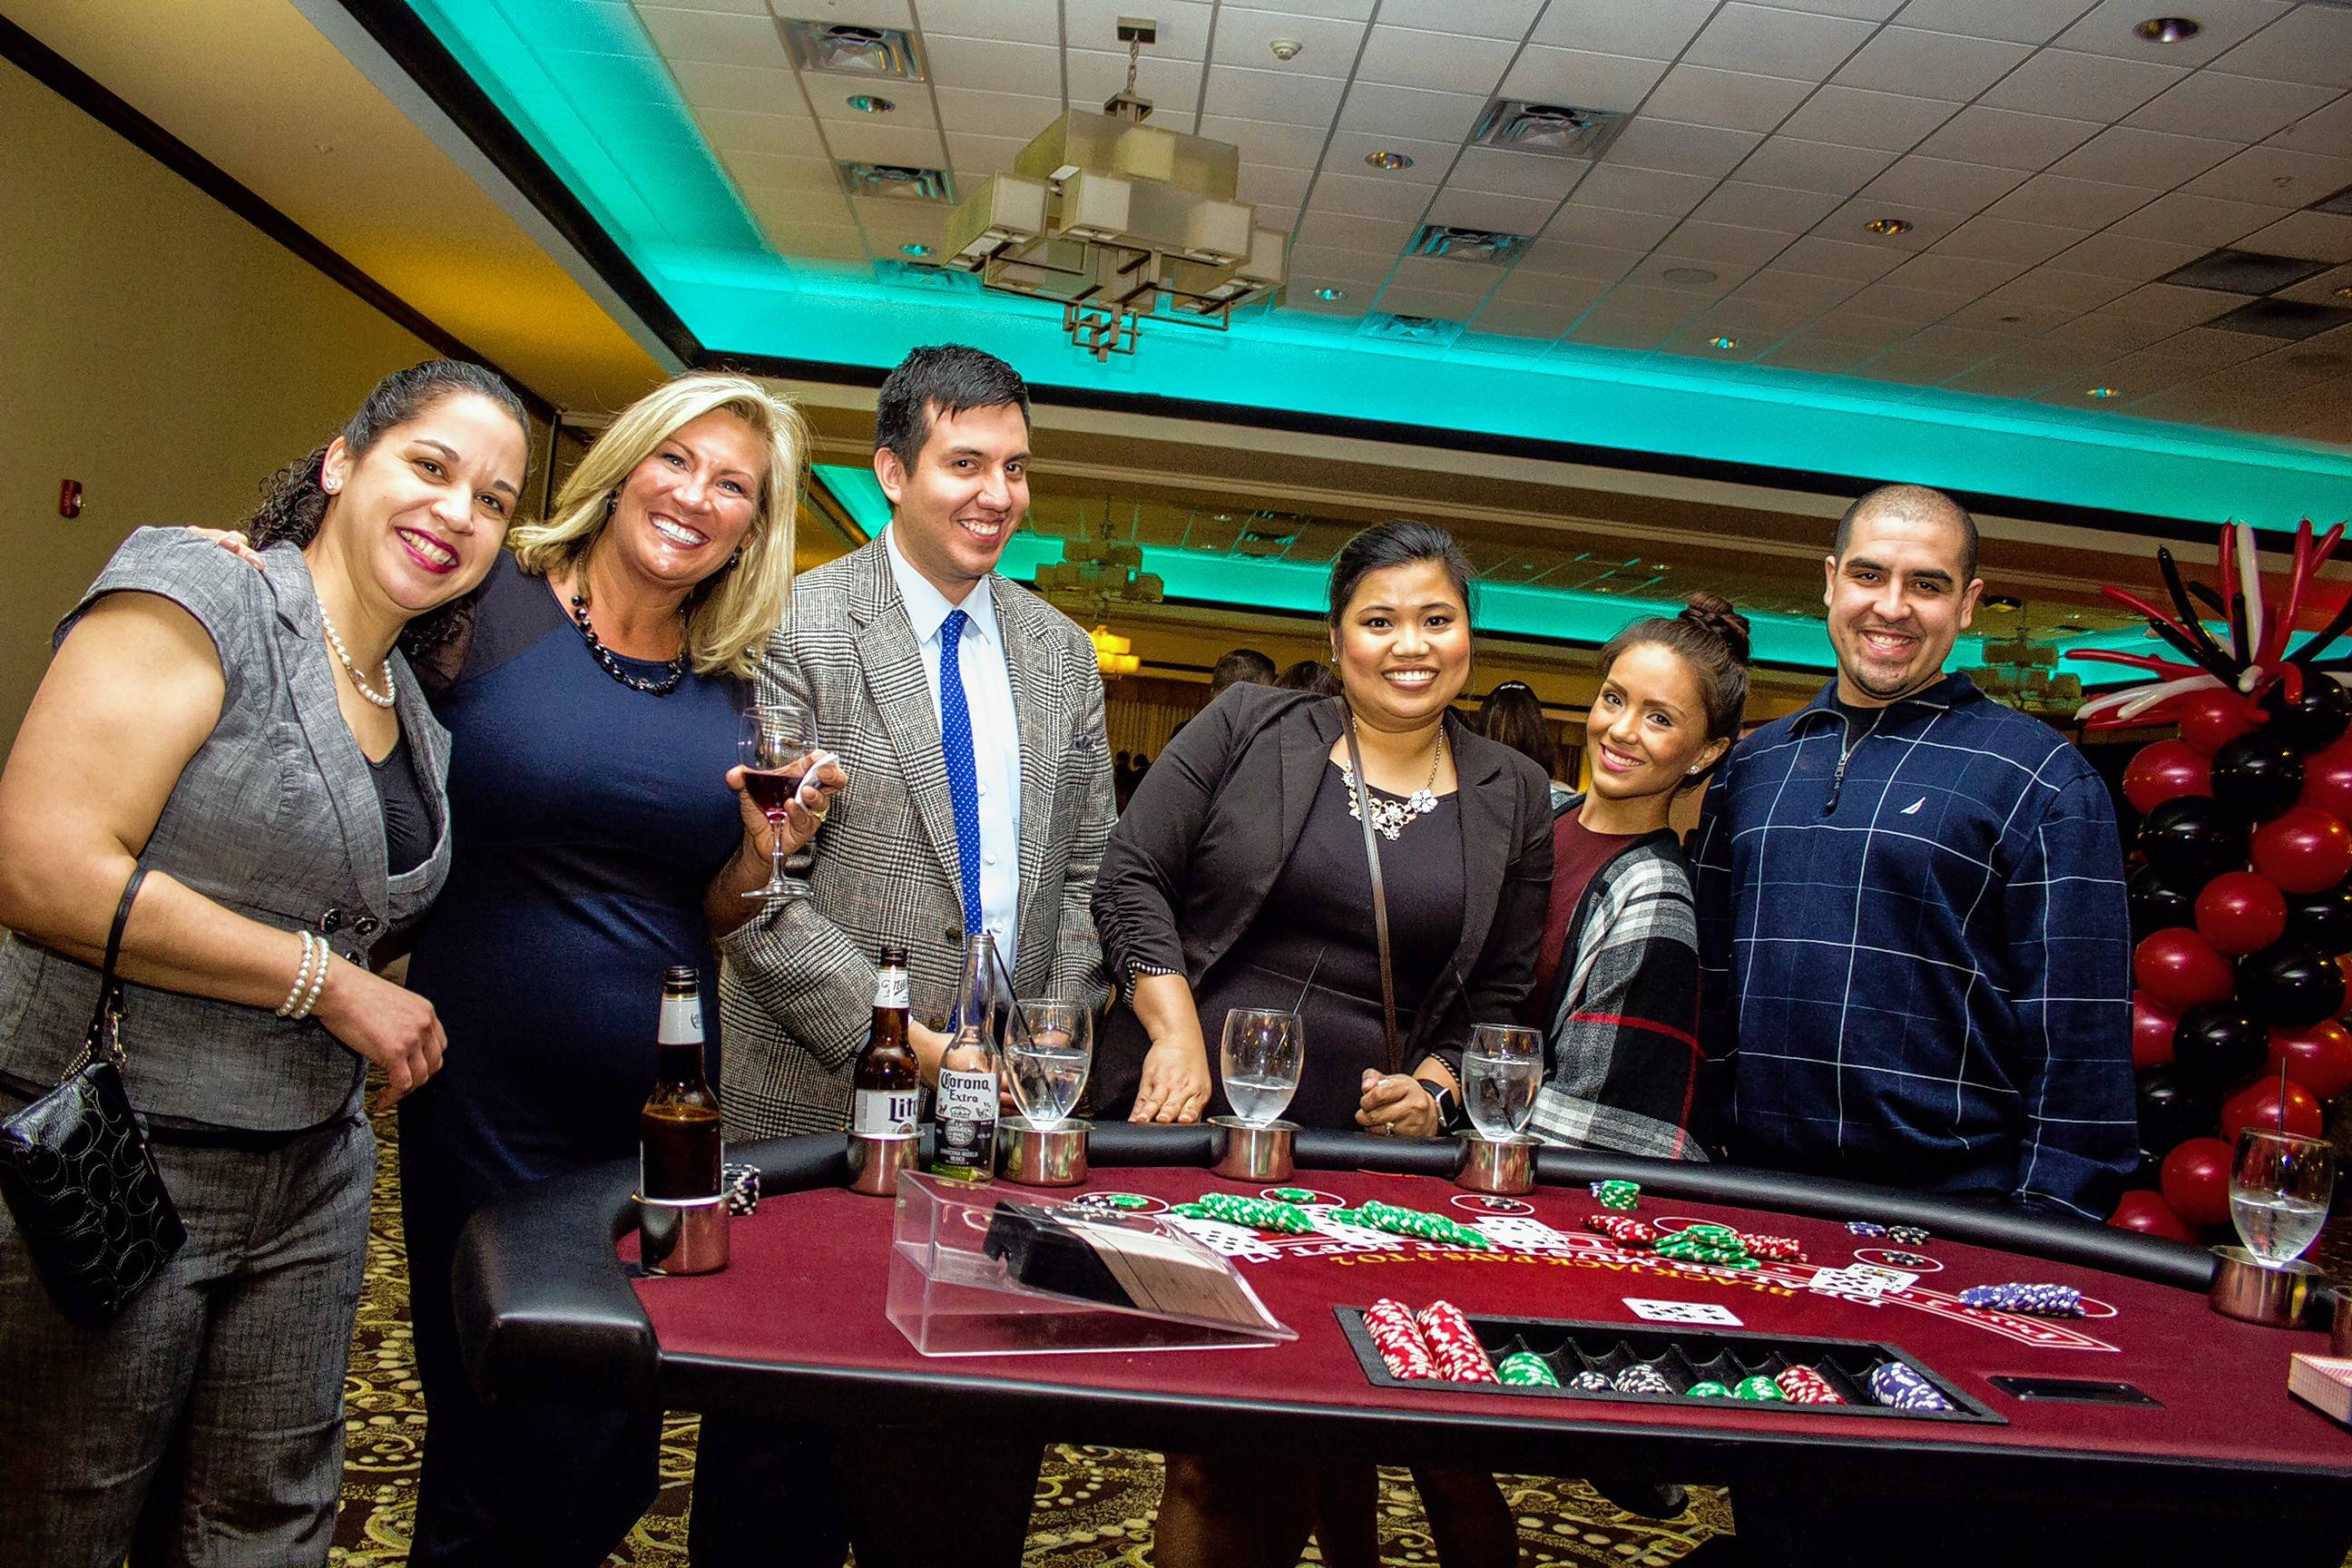 Book your venue soon for your office holiday party. Then, call on GSH Casino Parties and they'll handle all the details to give you and your whole office a fun evening and a night to remember. Visit www.gshcasinoparties.com.